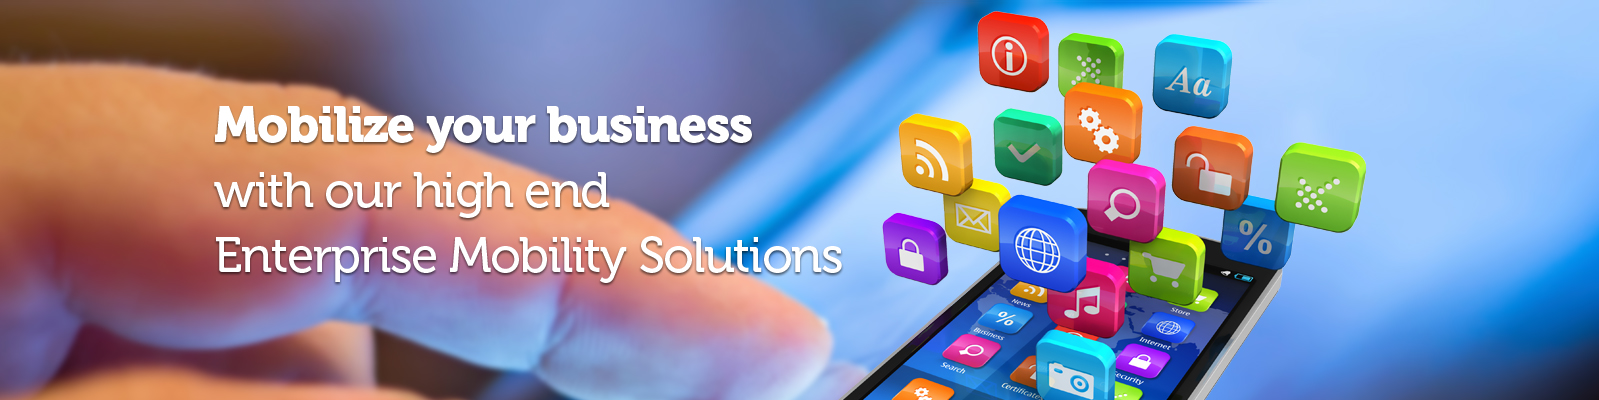 Mobile Your Business with our high end Enterprise Mobility Solutions